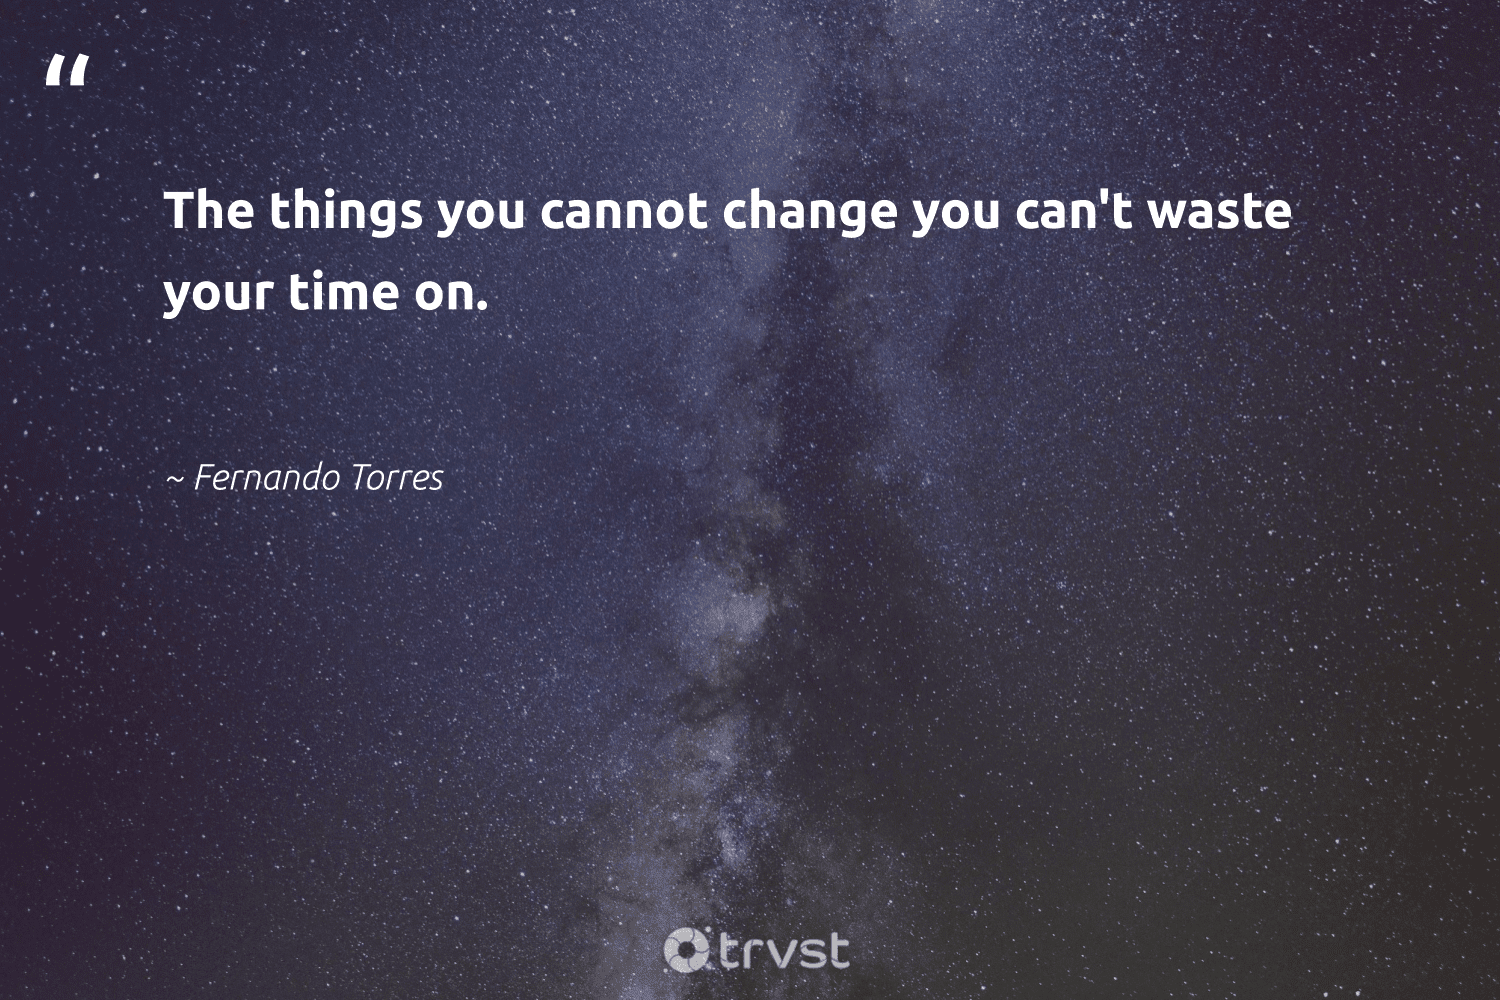 """The things you cannot change you can't waste your time on.""  - Fernando Torres #trvst #quotes #waste #mindset #socialchange #begreat #gogreen #health #socialimpact #togetherwecan #dotherightthing #changemakers"